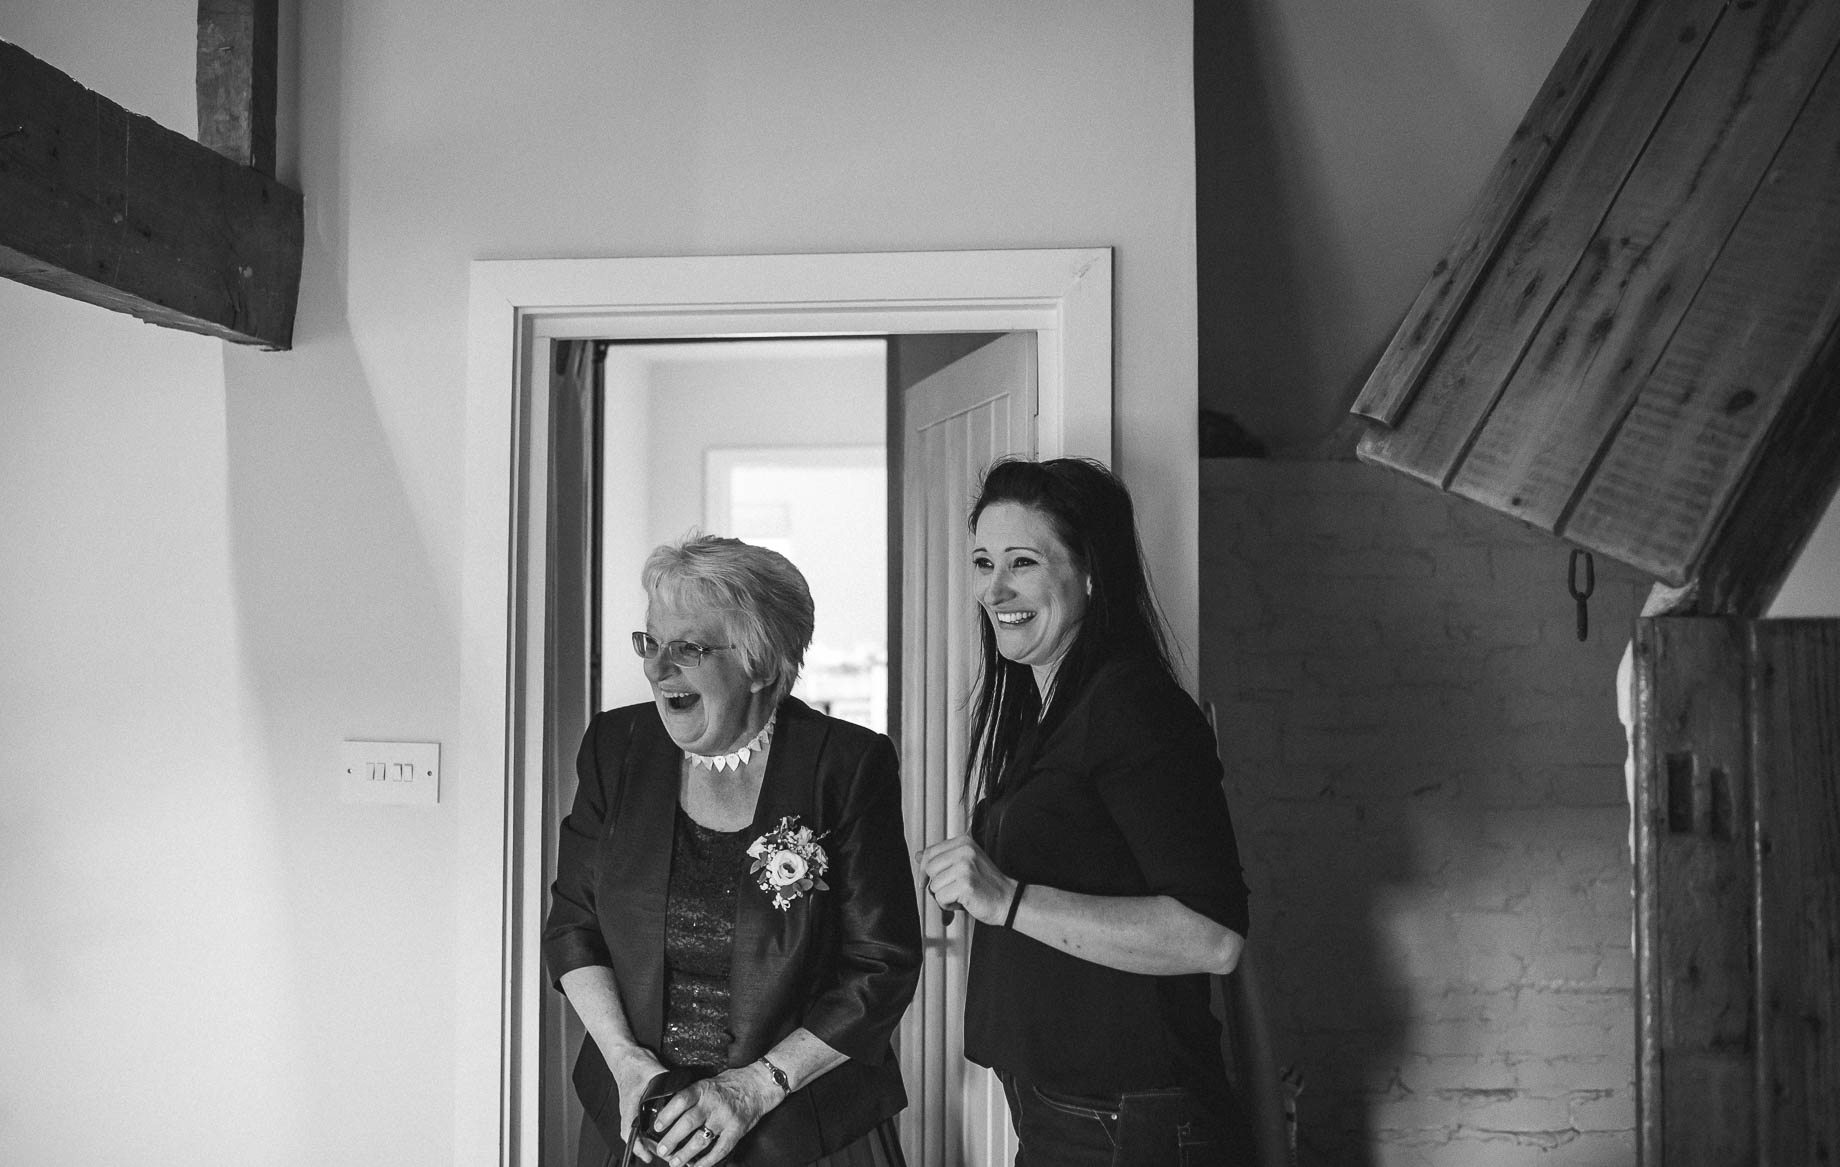 Bury Court Barn wedding photography by Guy Collier - Heather and Pat (15 of 170)